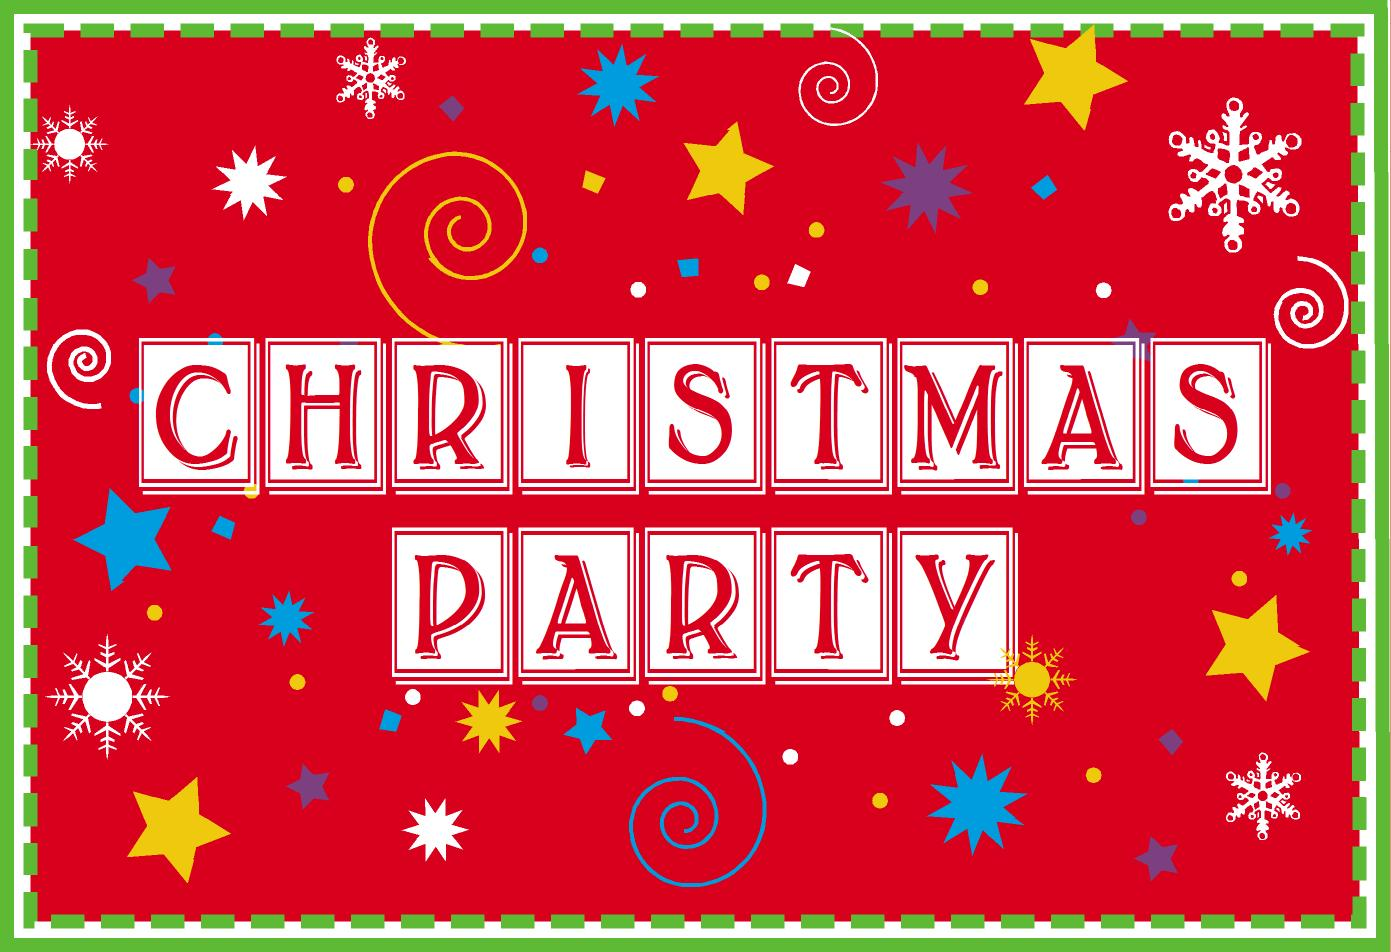 Christmas party invite to create dreams party invitation with prepossessing layout 6